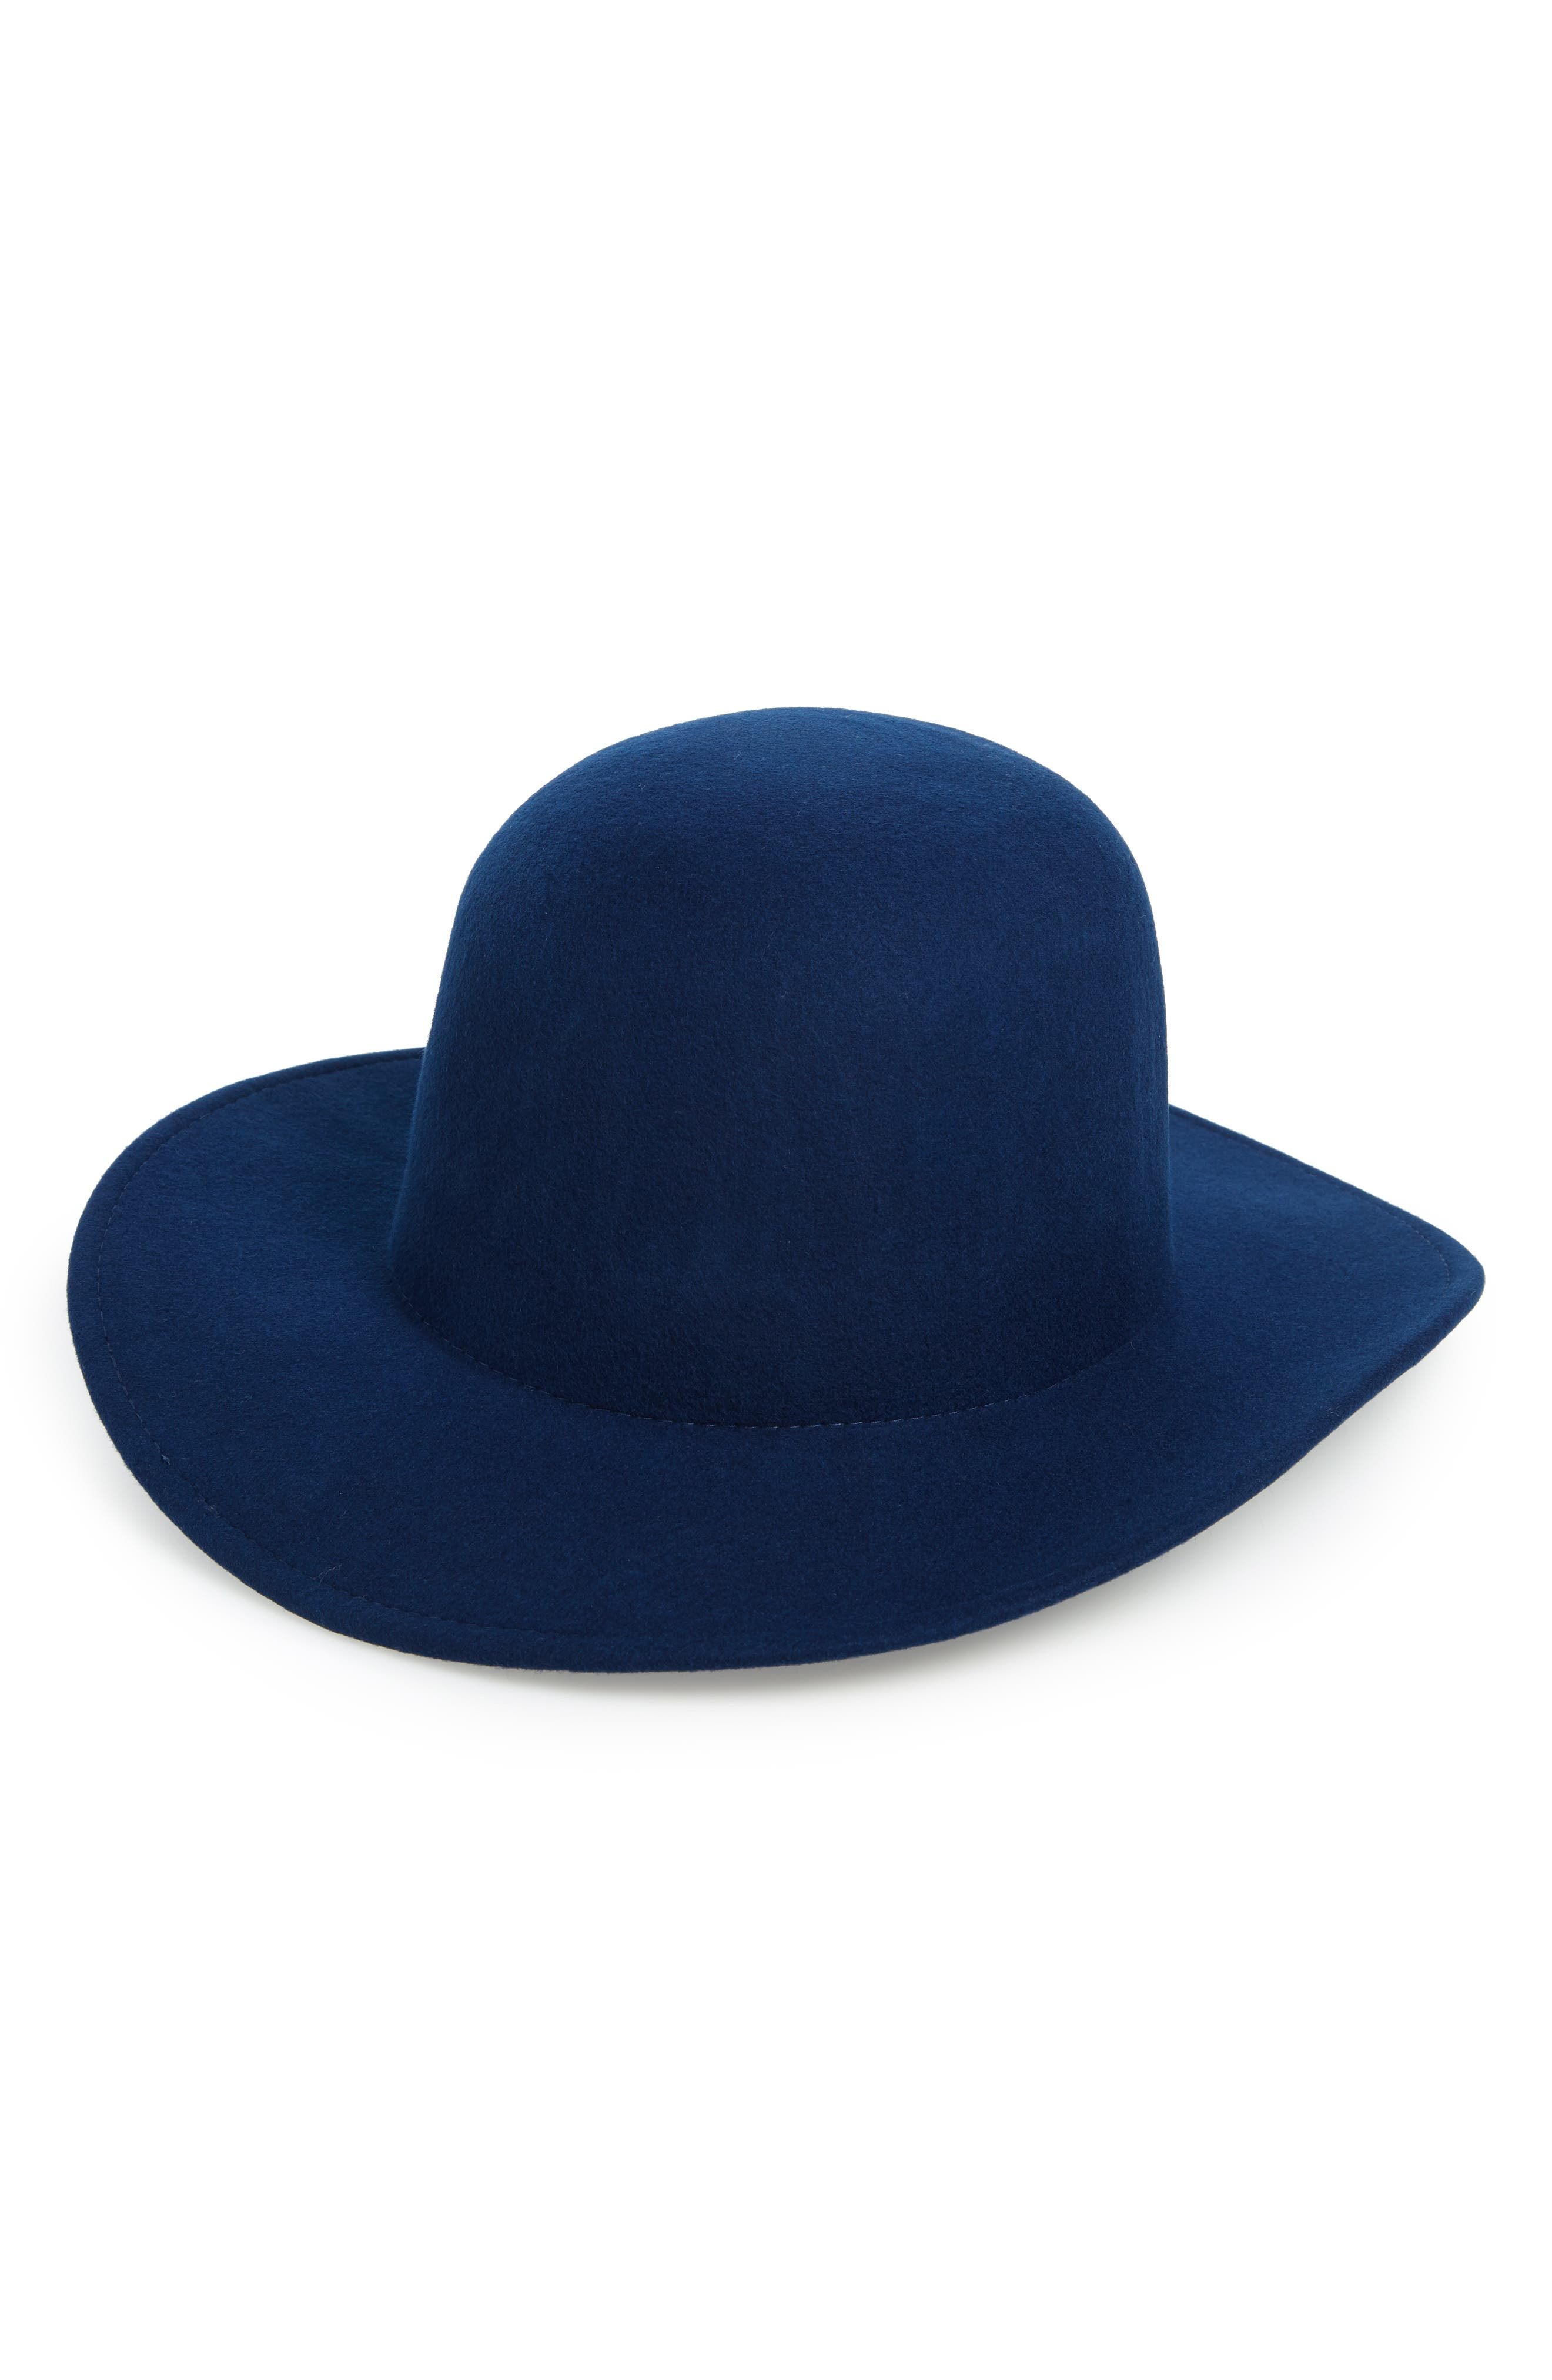 x Biltmore<sup>®</sup> Dome Felt Hat,                             Main thumbnail 1, color,                             BLUE NIGHT